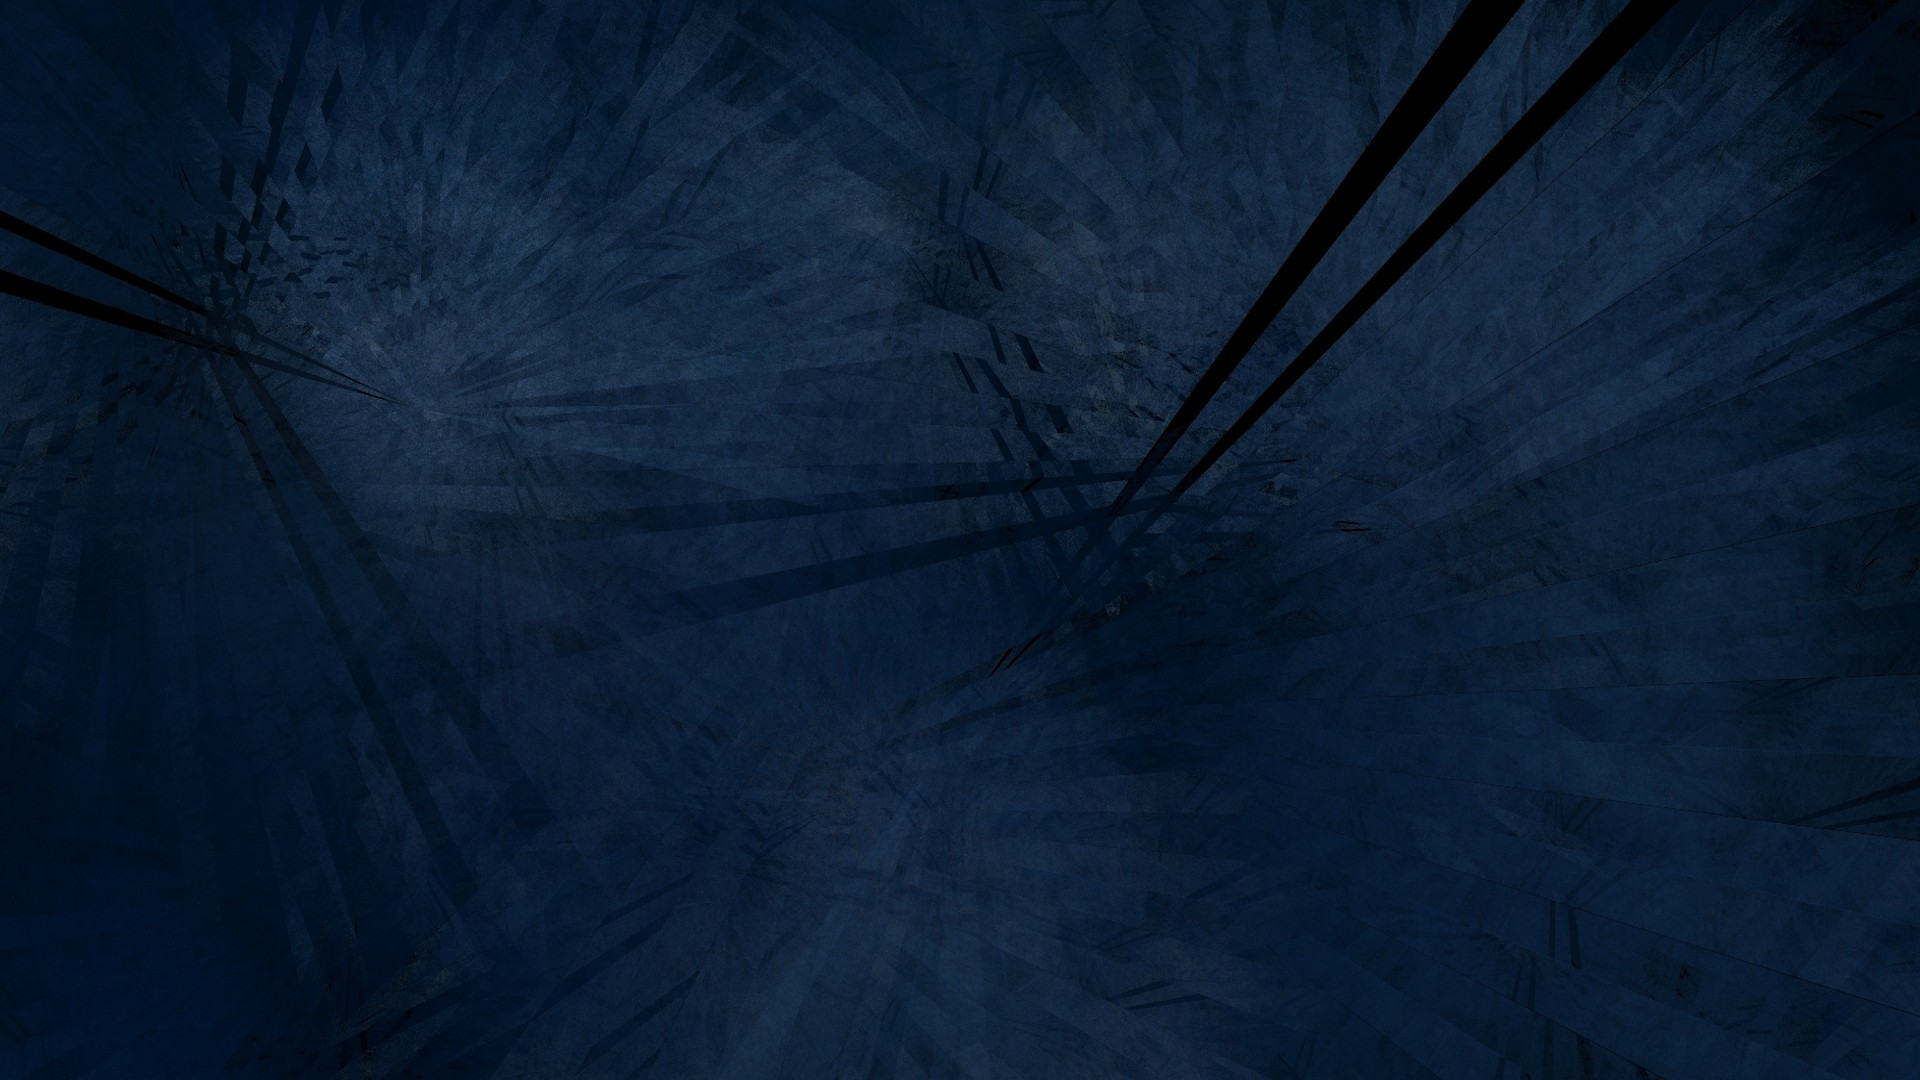 Patterns Surface Templates Textures Darkness Backgrounds Wallpaper